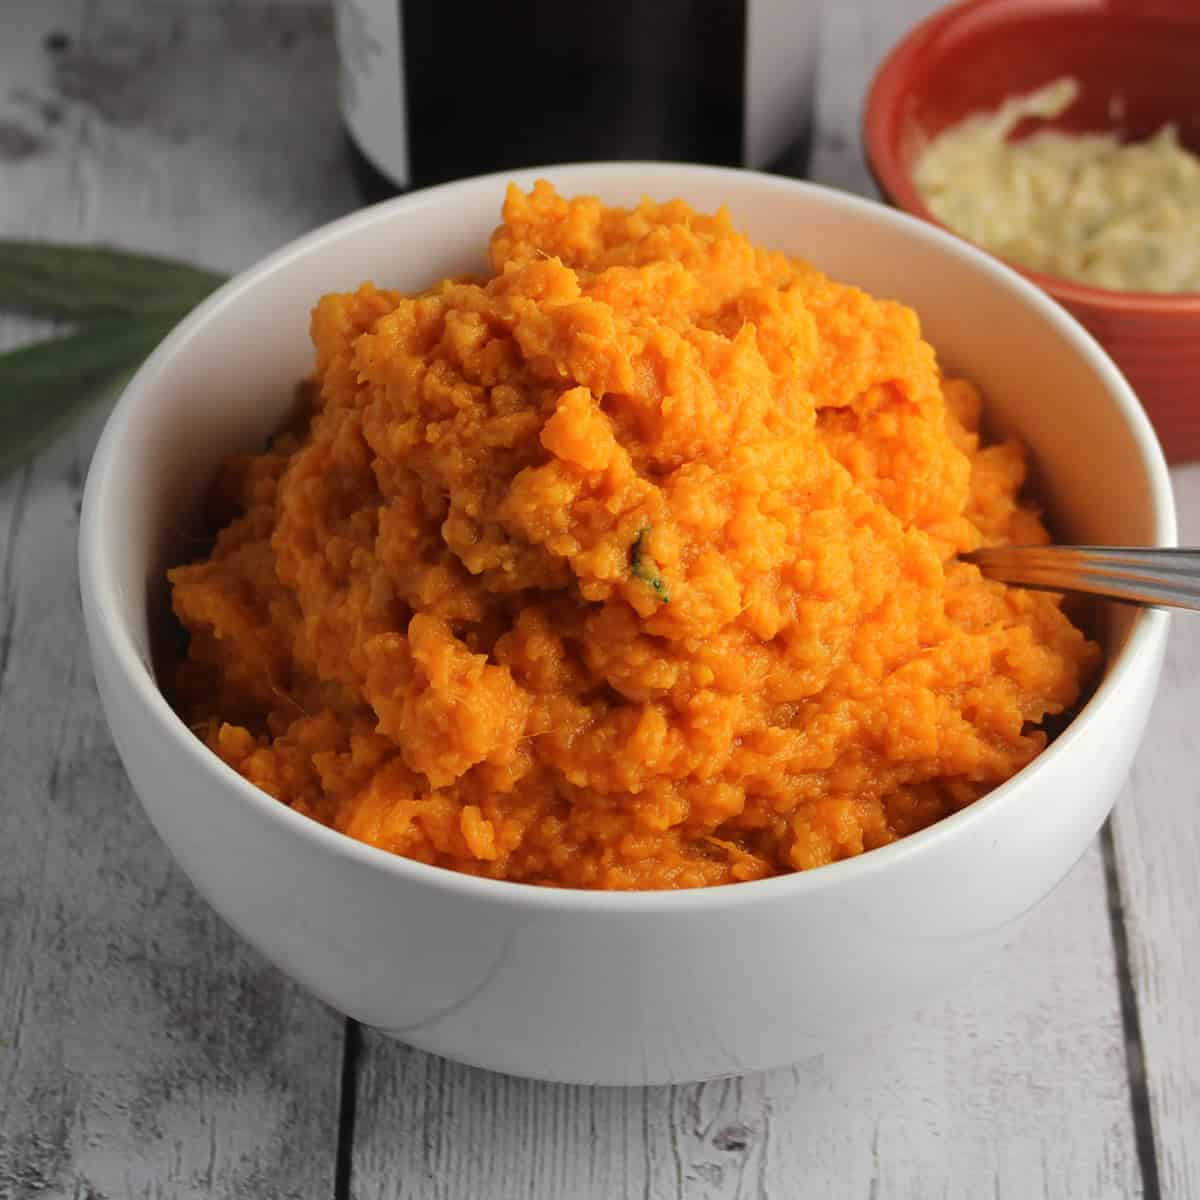 mashed sweet potatoes in a white bowl.